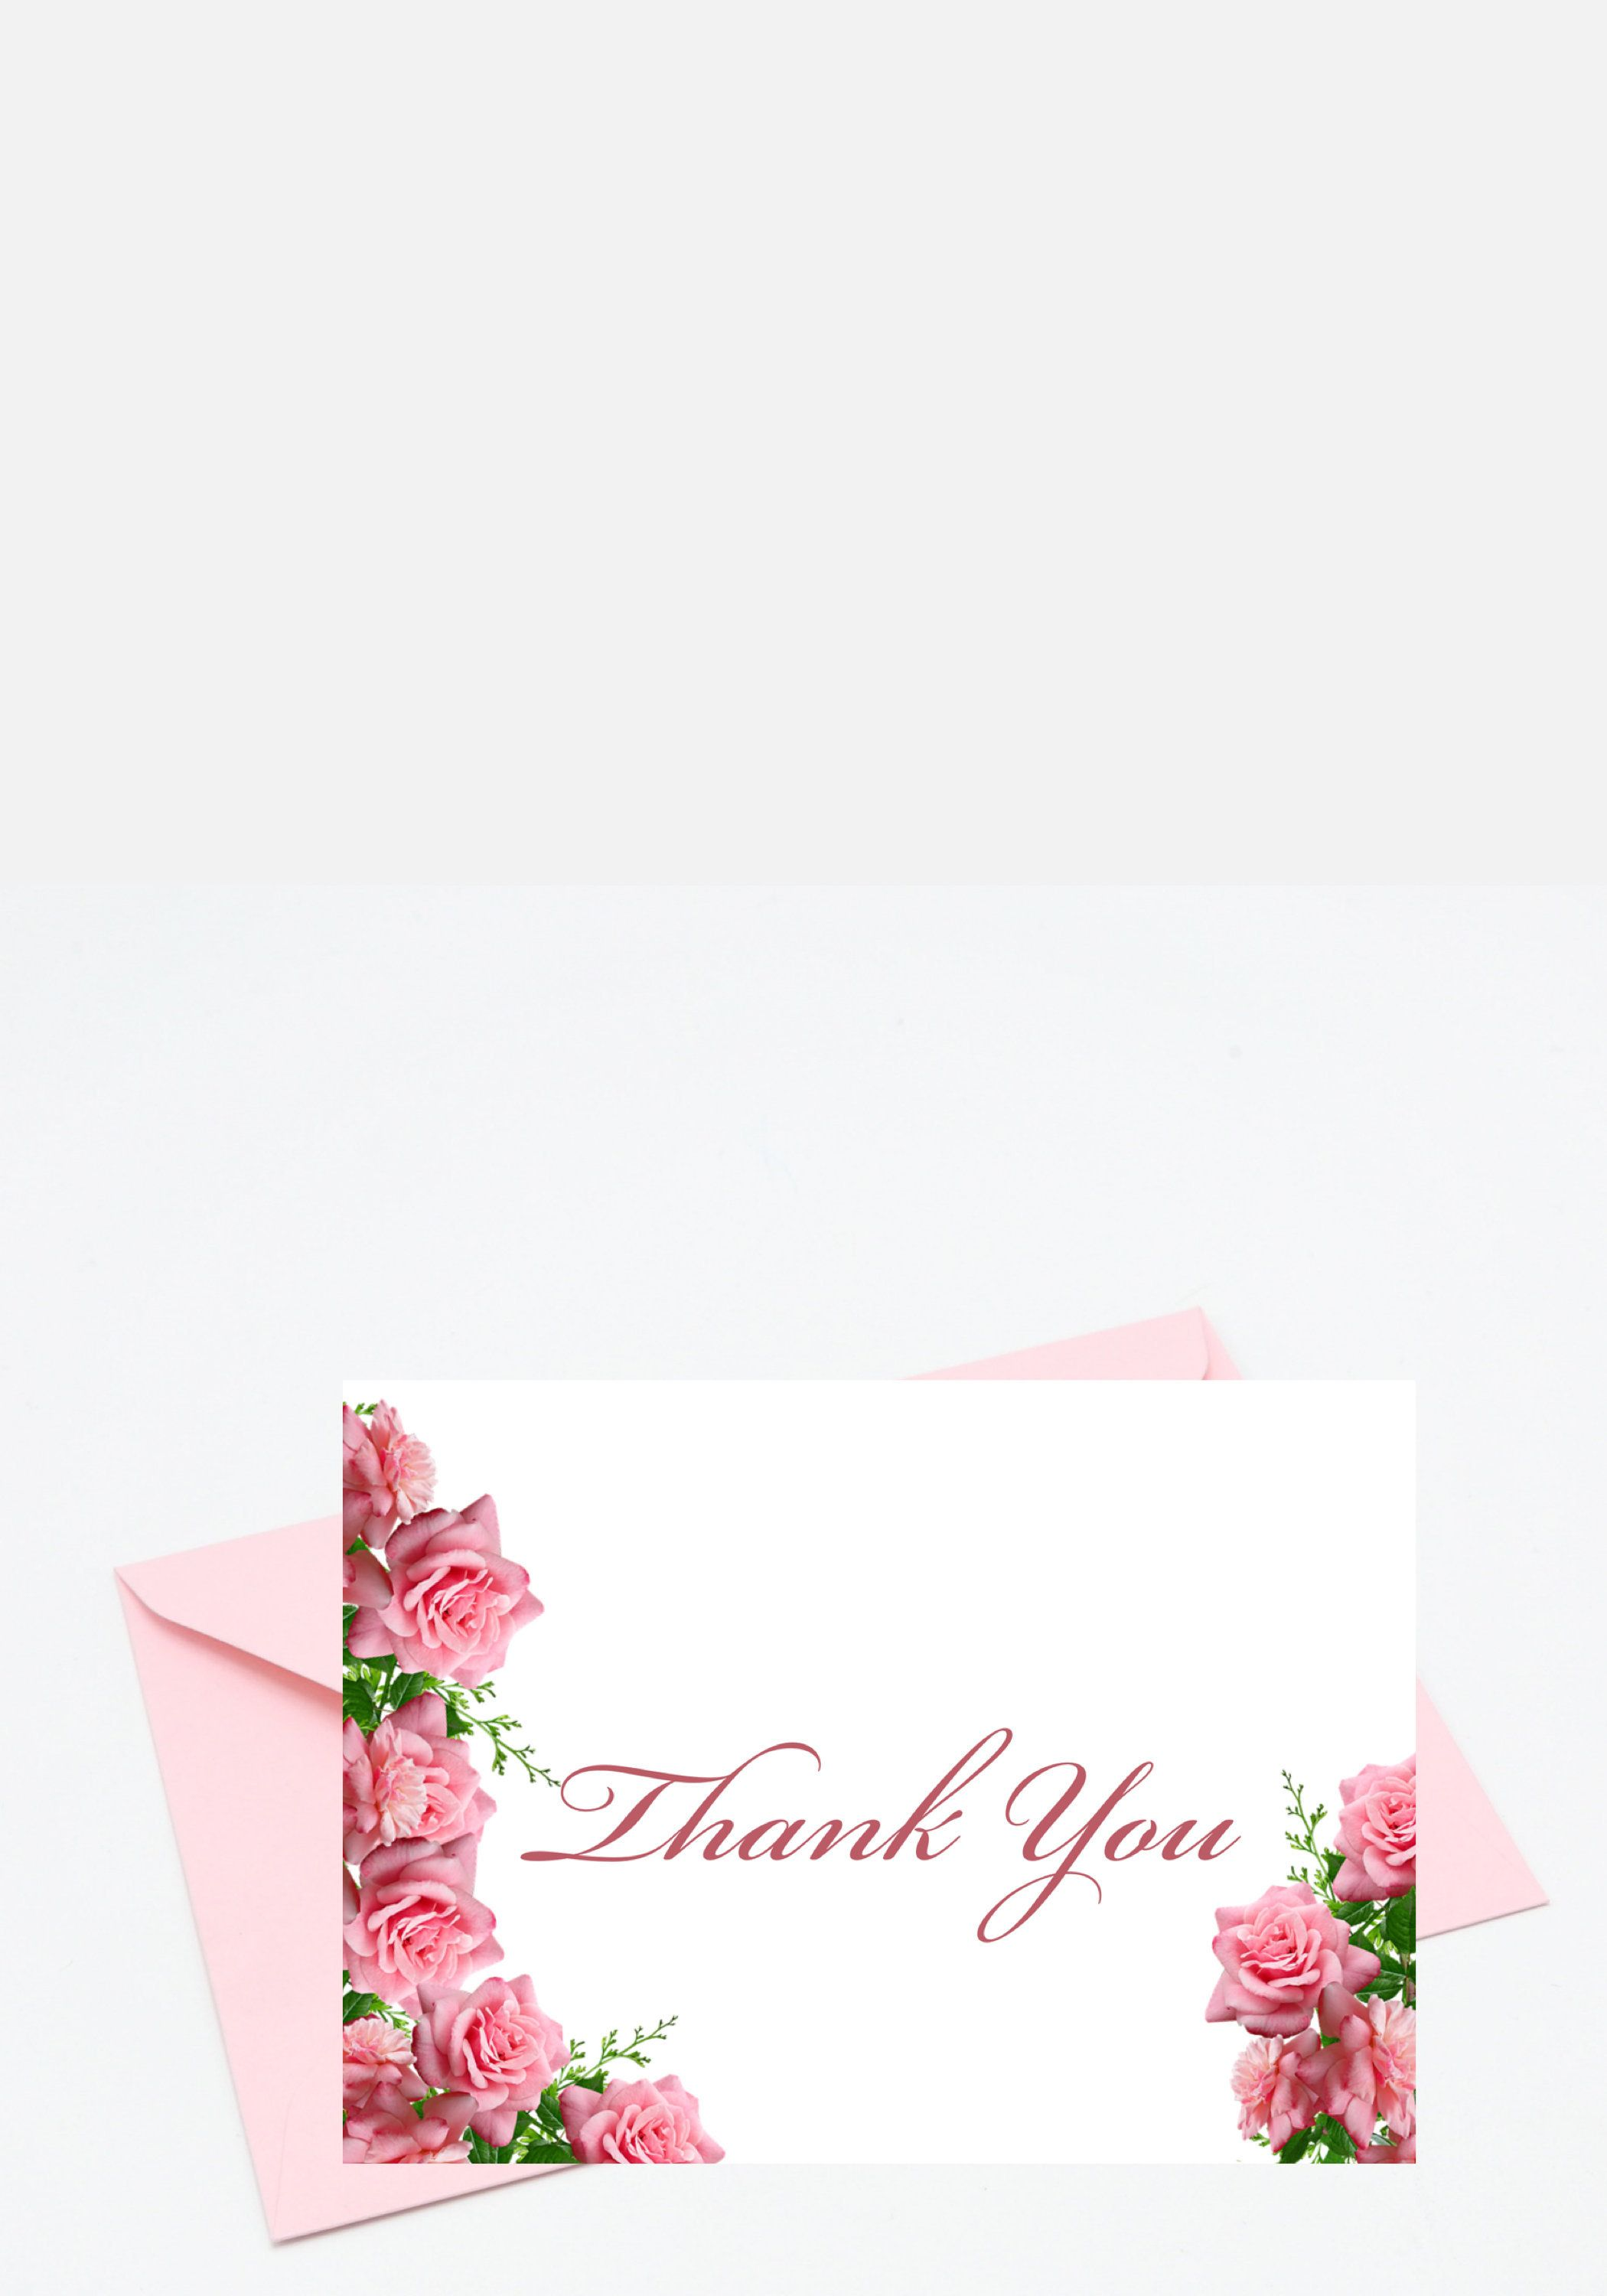 5x7 Thank You Thank You Card Happy Thoughts Printable Digital Card Blank Card Instant Download By Acardandasmileforyou Thank You Cards Cards Your Cards